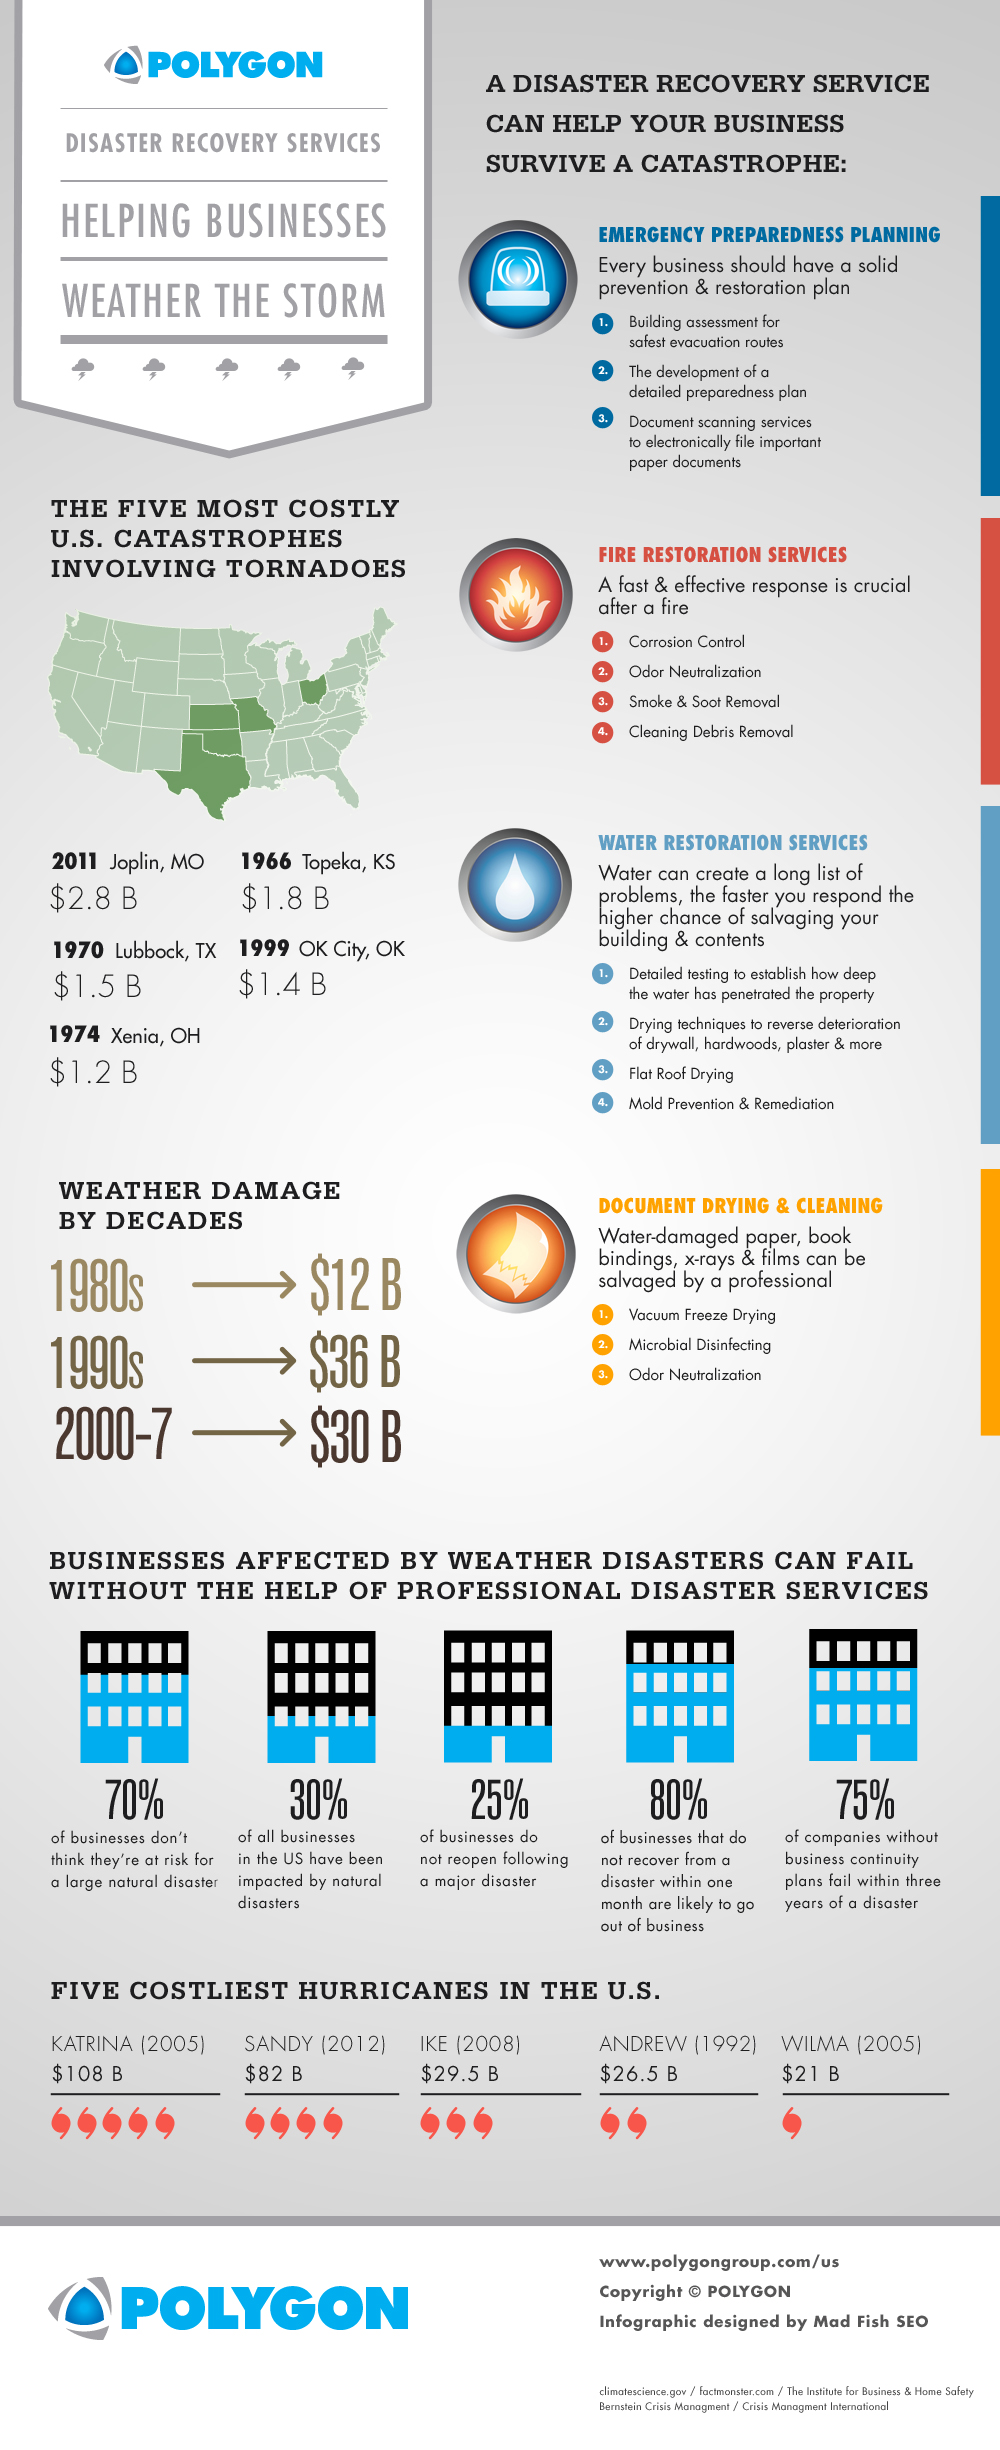 Disaster Recovery Services Help Businesses Weather the Storm